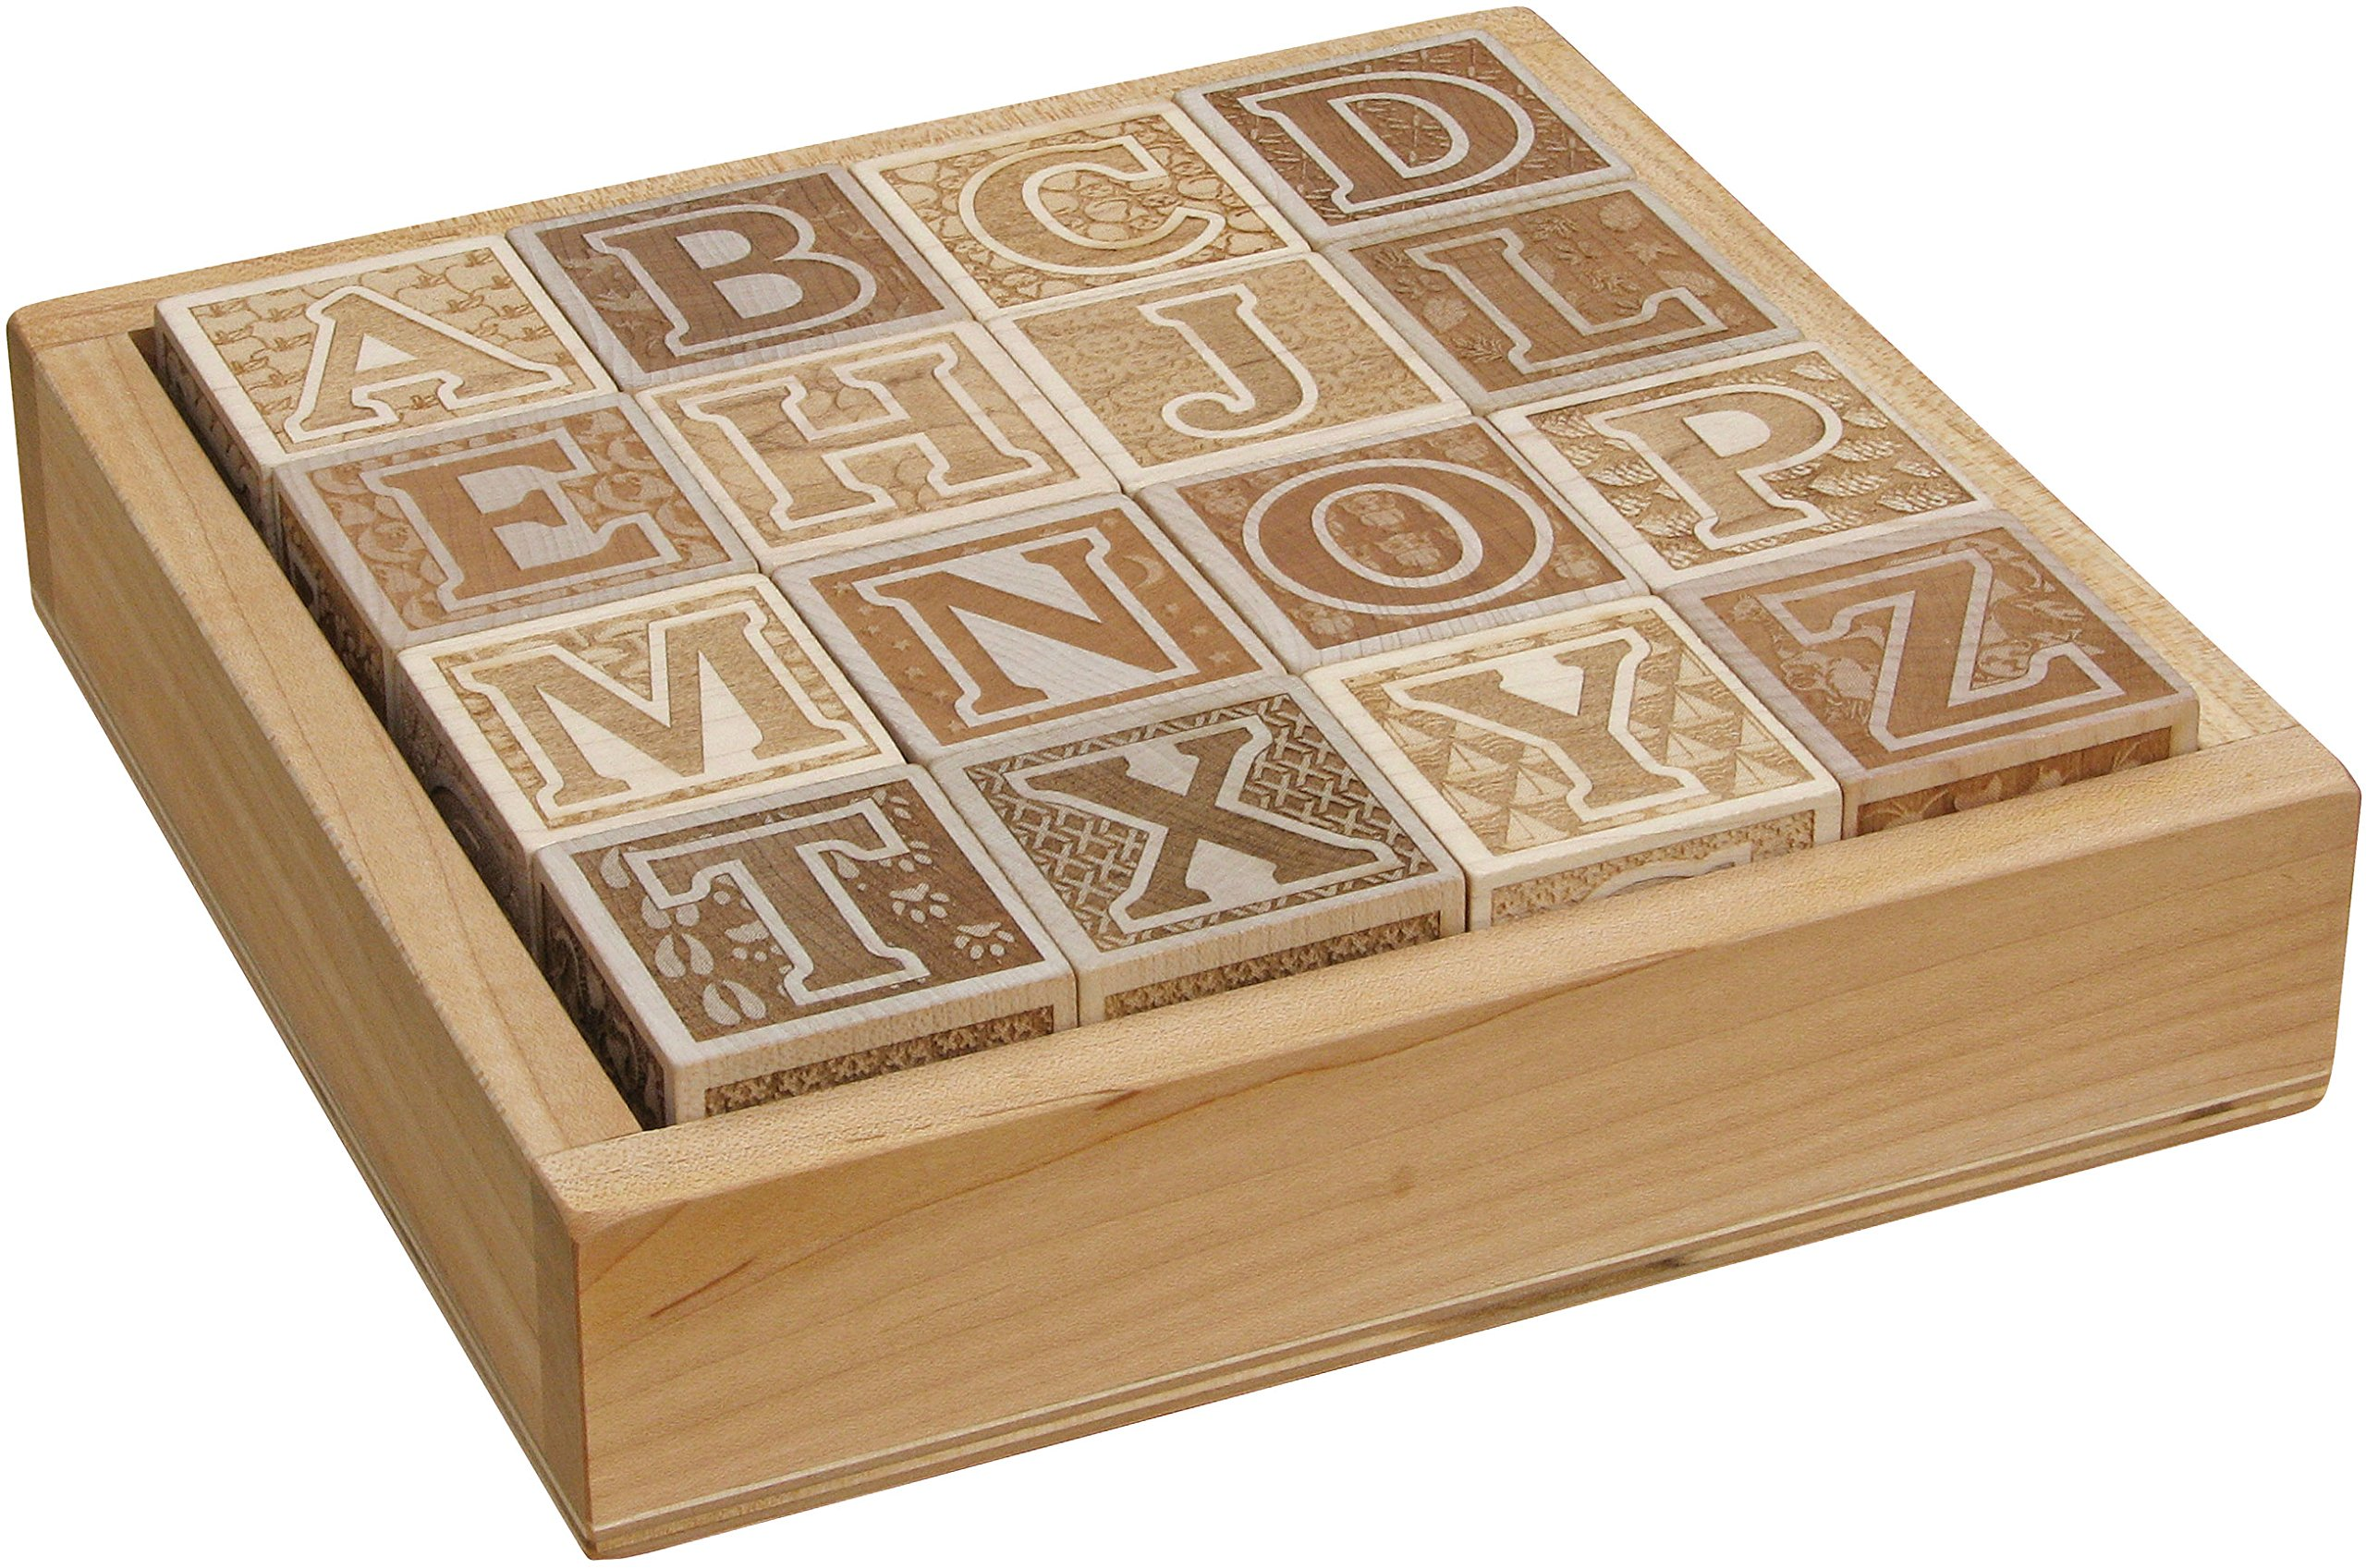 Natural Wooden ABC Blocks in Tray - Made in USA